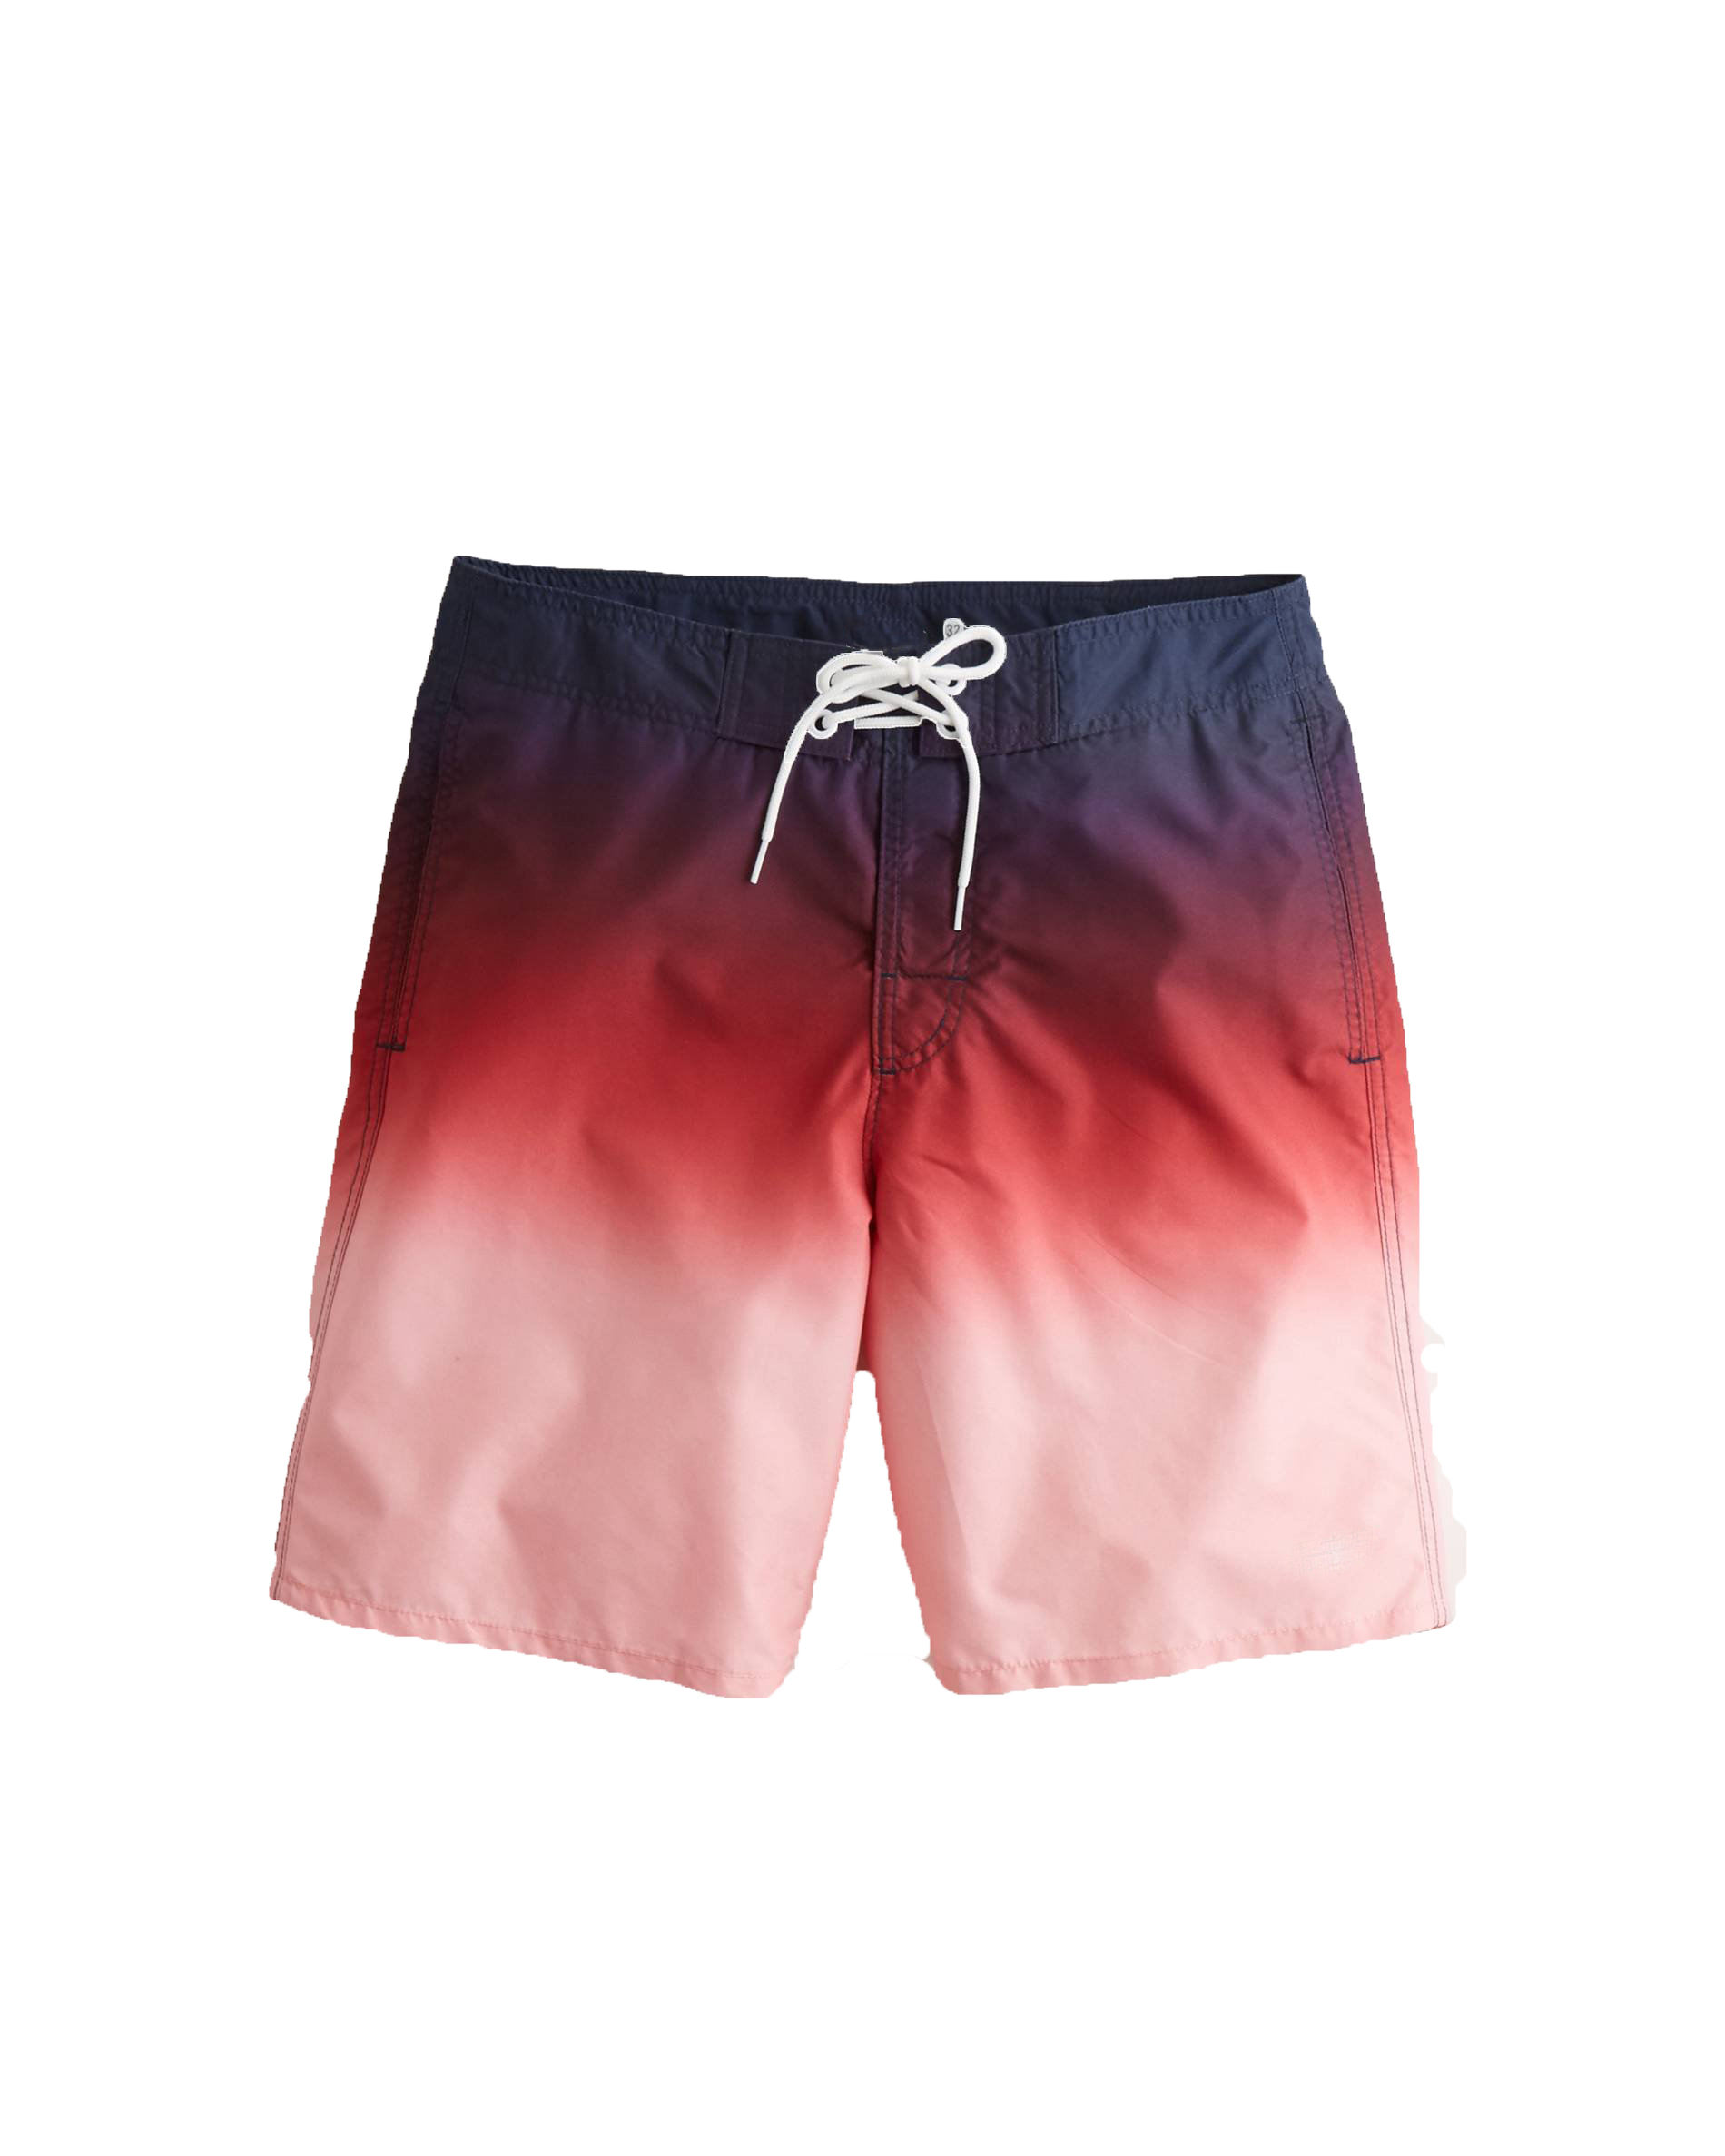 RED Sublimation Digital Print Swimsuit Beach wear Men Elastic Waistband Swim Shorts